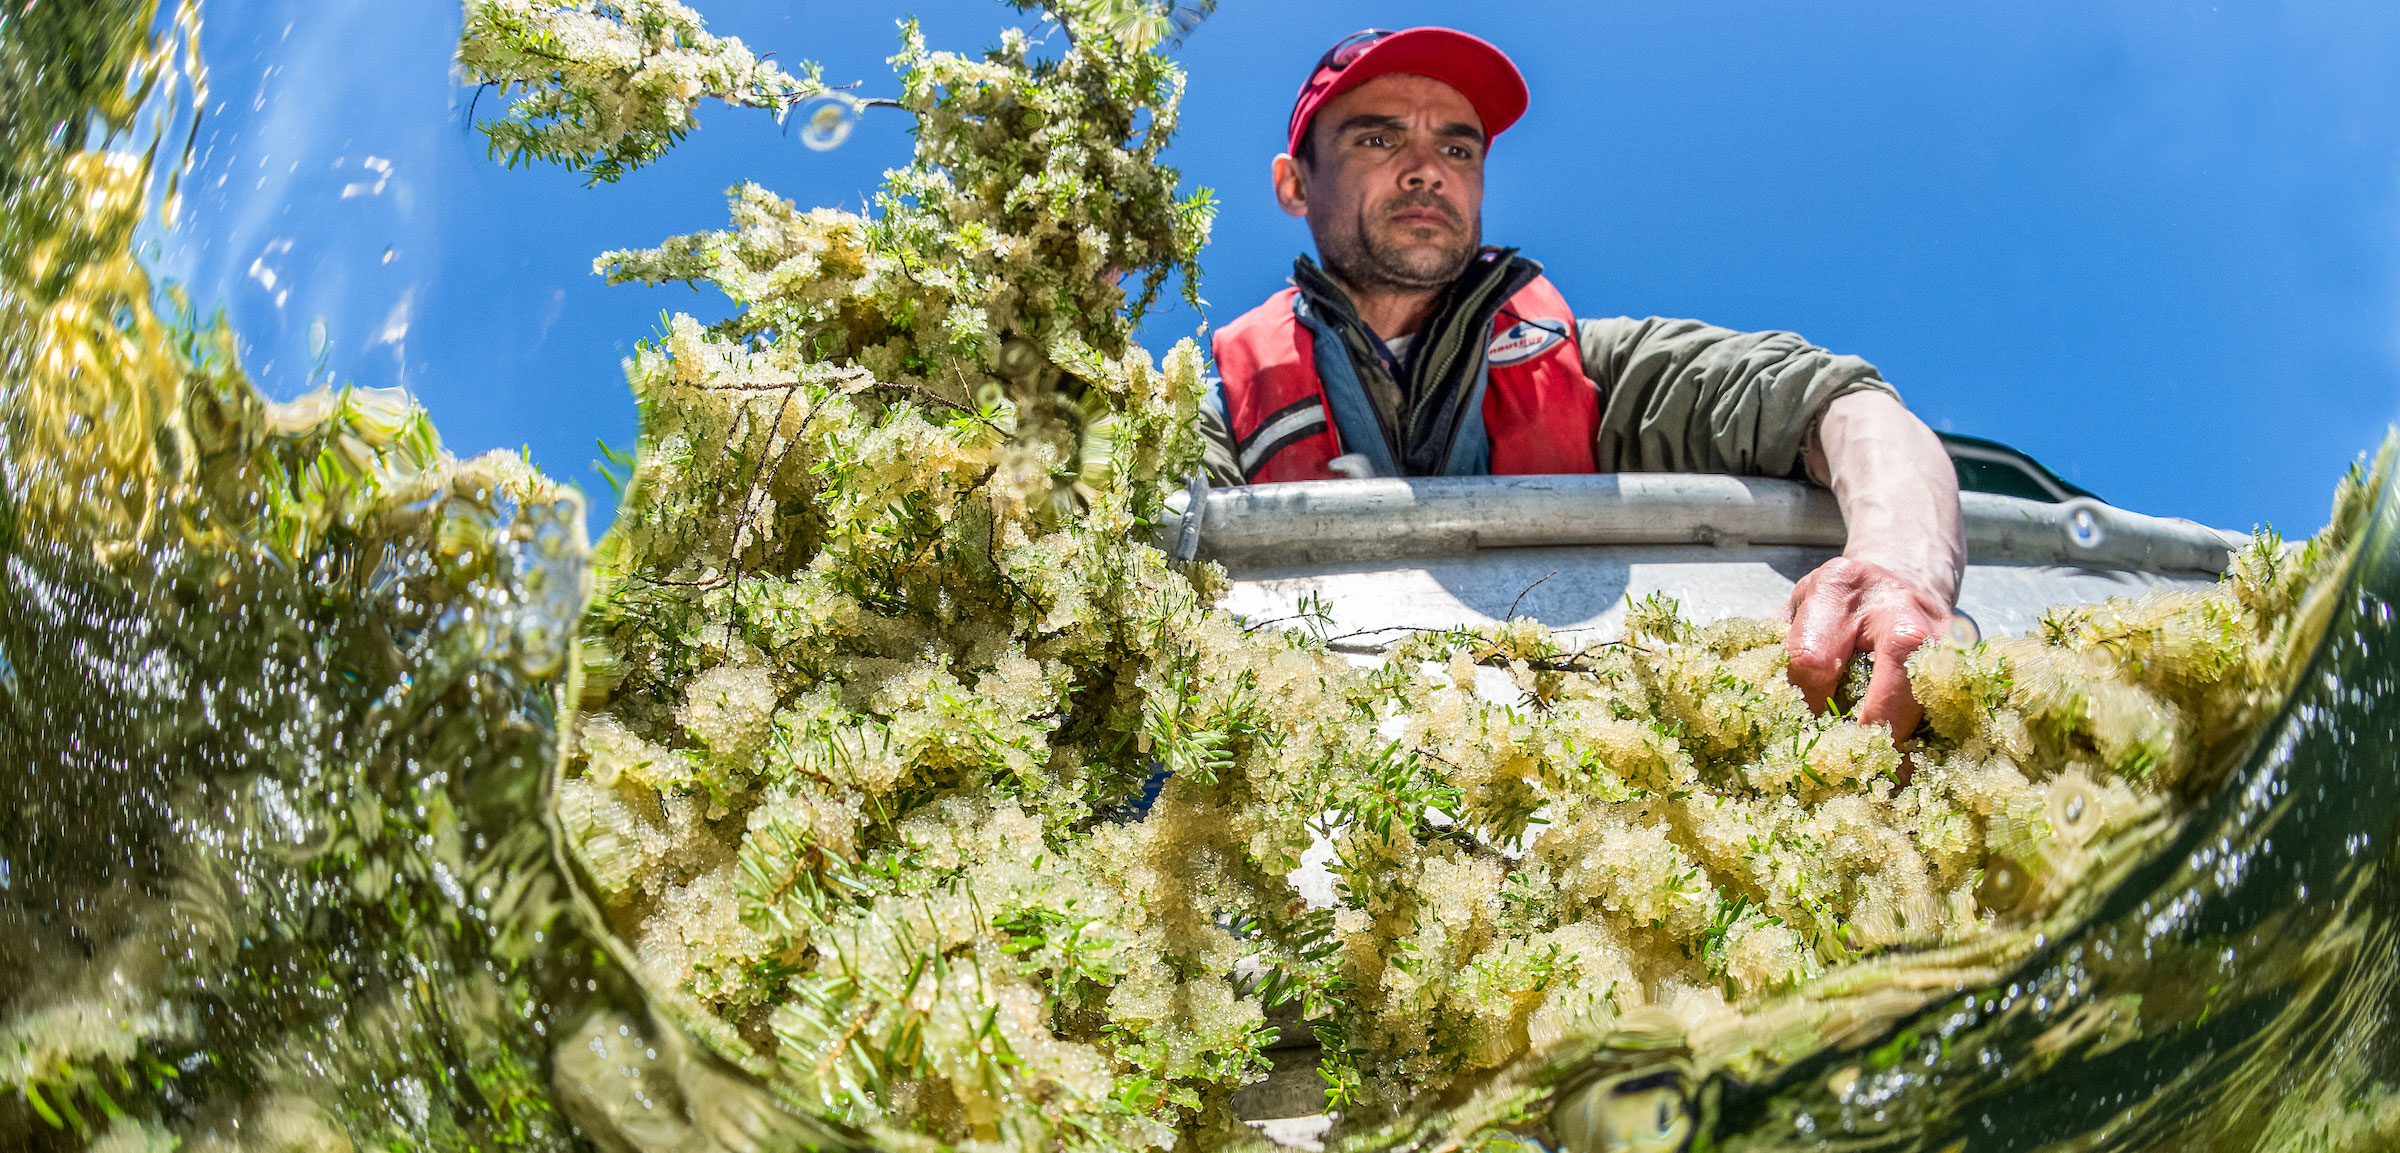 Jordan Wilson from the Heiltsuk First Nation harvests herring roe on hemlock branches.